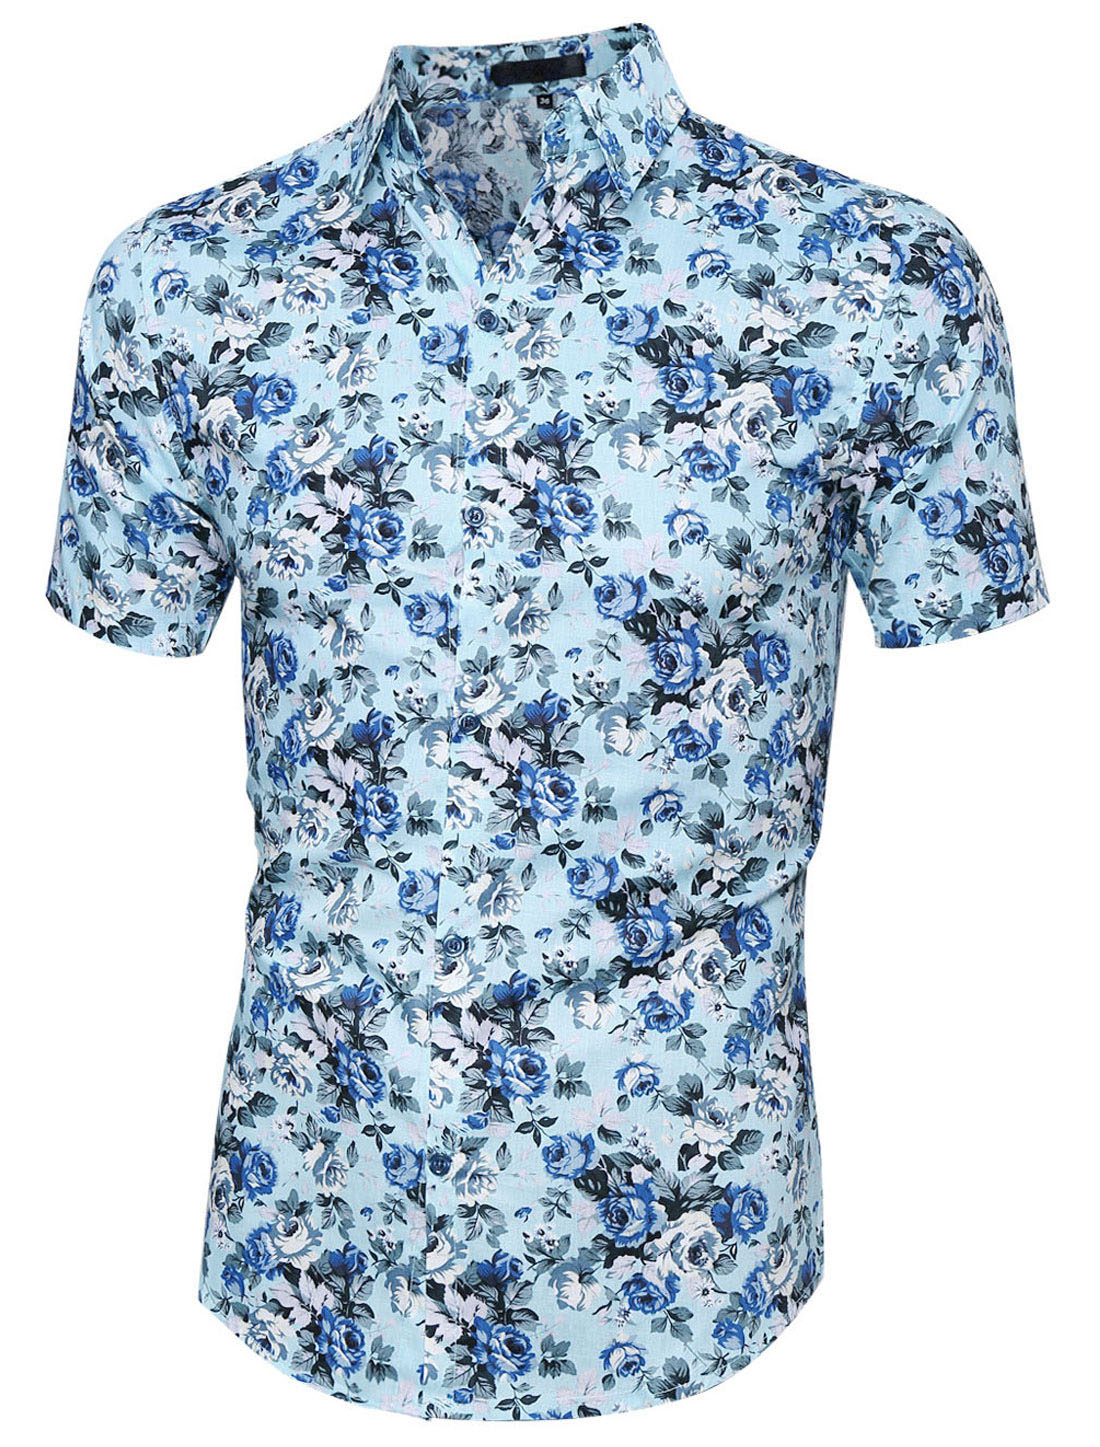 Men Button Closure Flower Pattern Casual Shirt Light Blue L